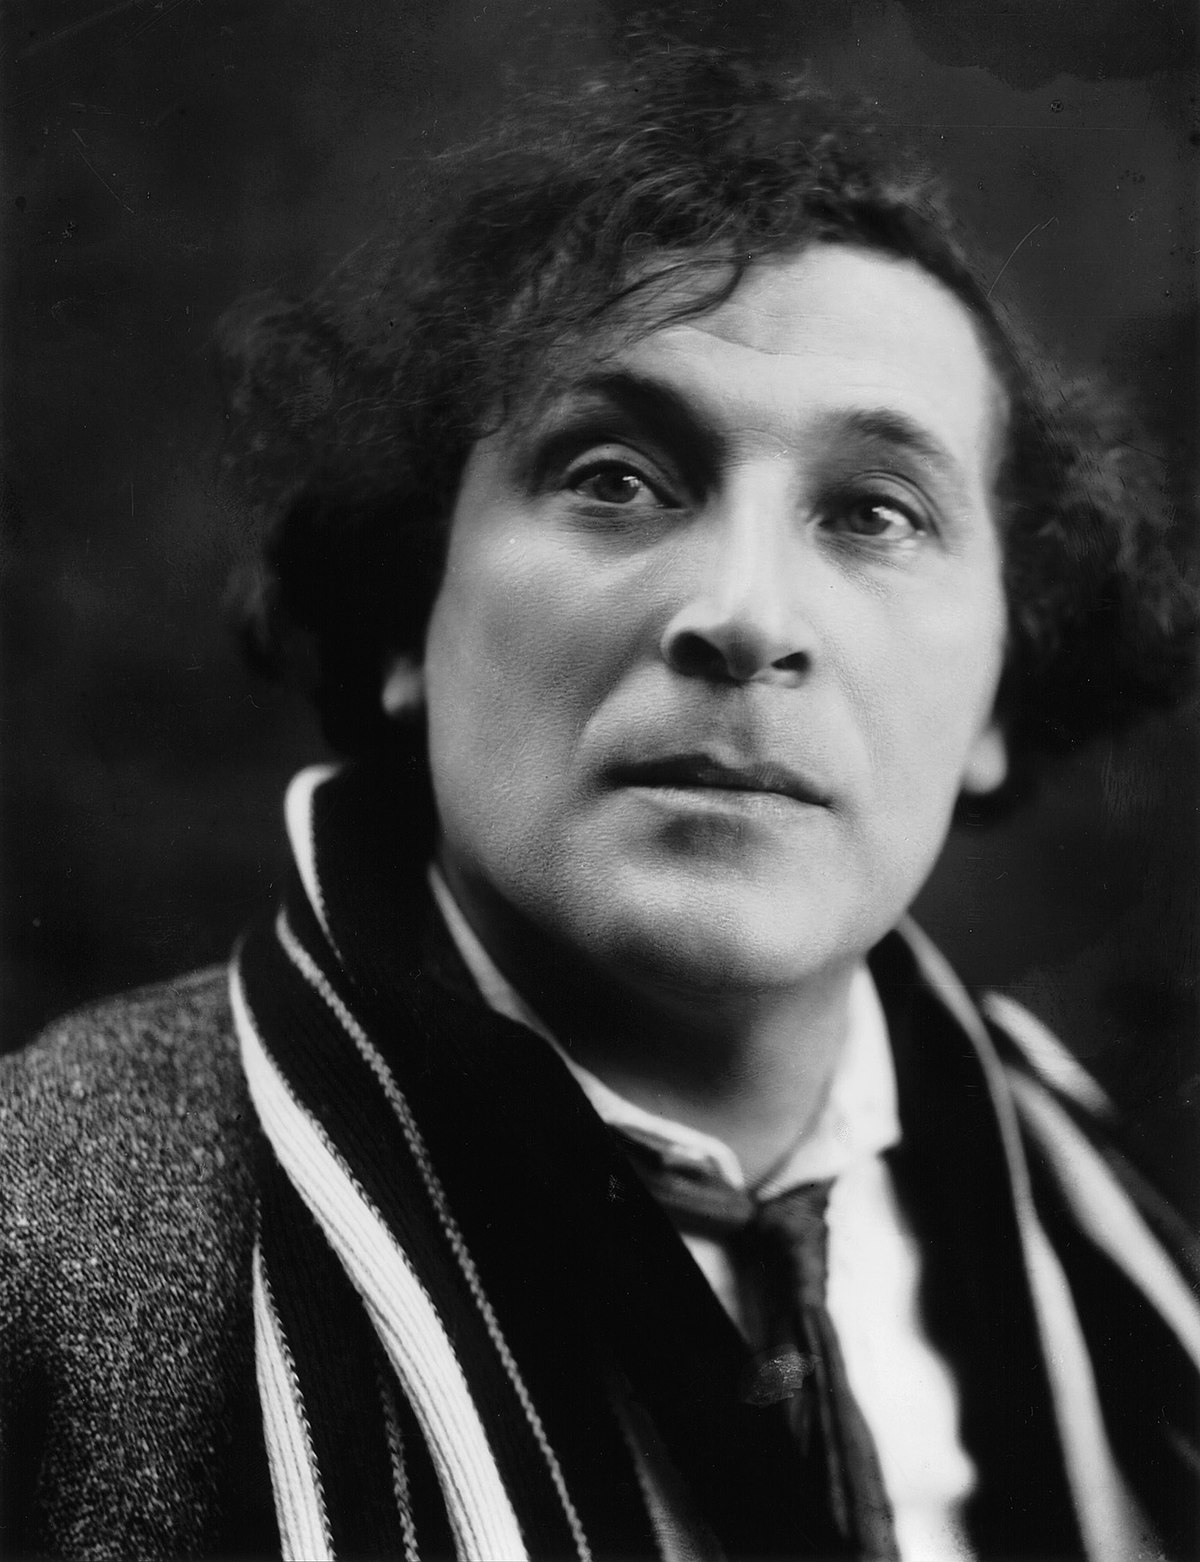 marc chagall courte biographie : marc chagall time :  marc chagall quien es en 2020/2021